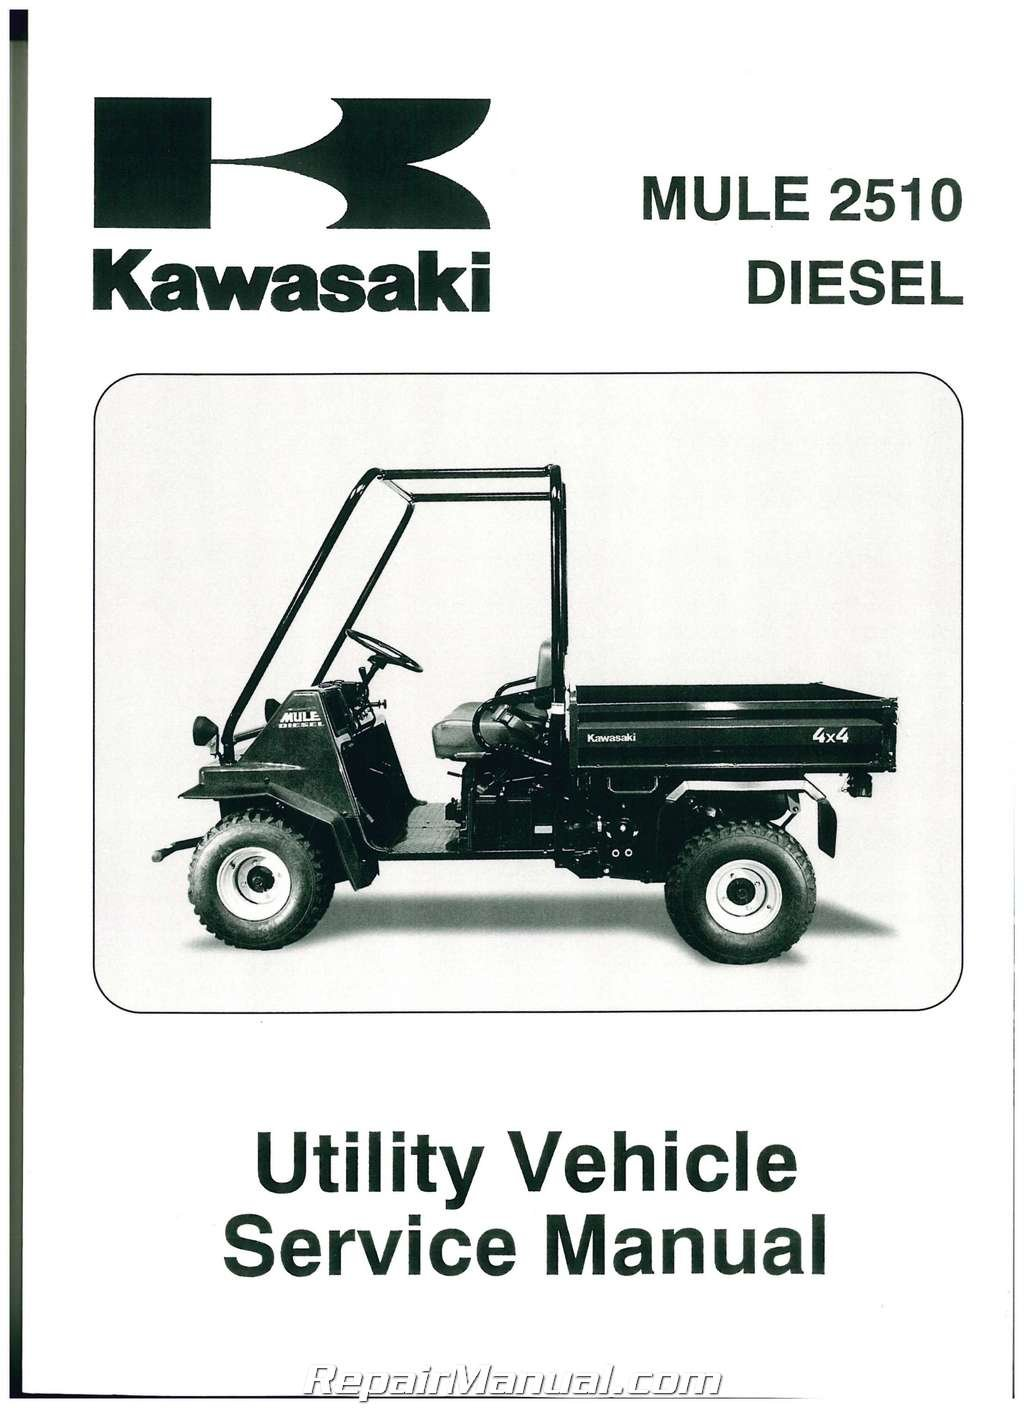 99924 1251 03 2000 2002 kawasaki mule 2510 diesel kaf950 mule side rh  amazon com Kawasaki Mule 610 Manual Kawasaki Mule Service Manual